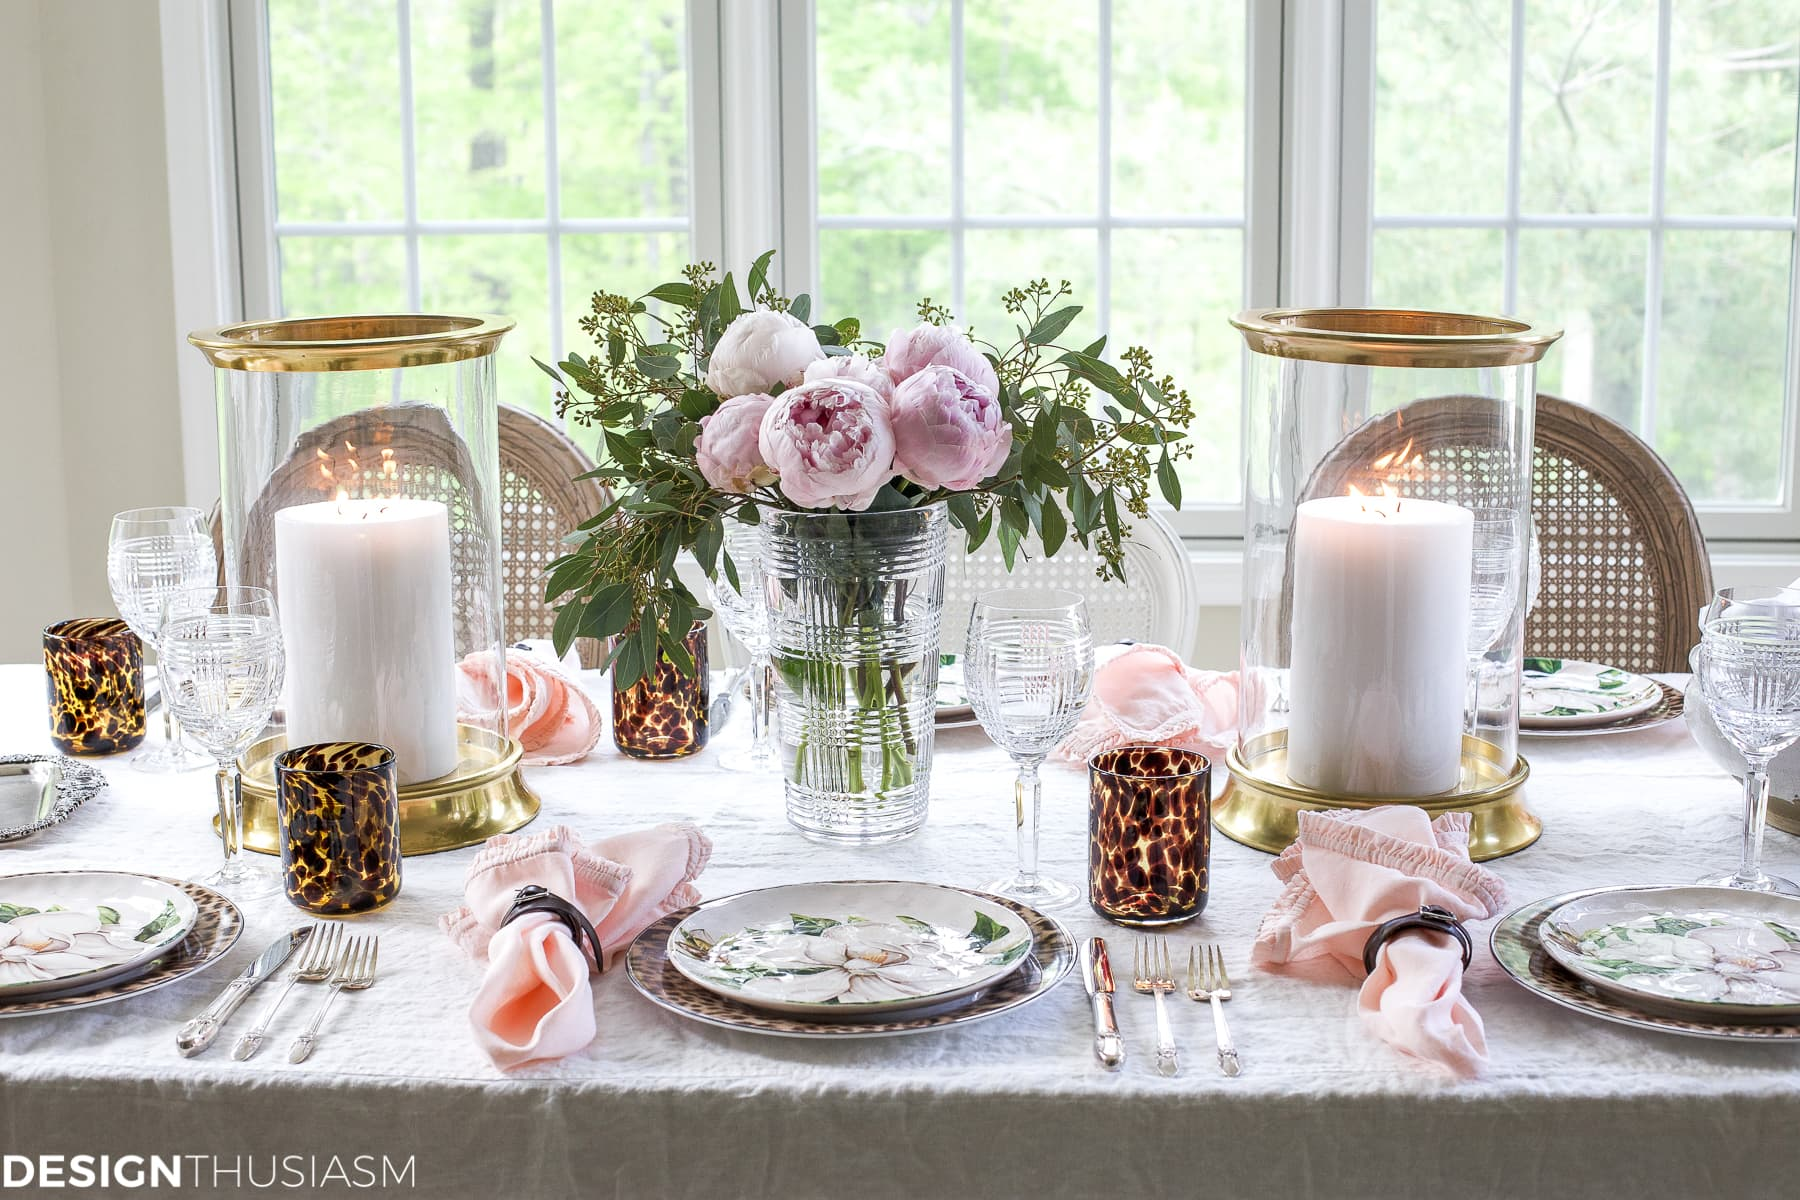 Cool Plates Mixing Animal Print And Soft Floral In A Tablescape